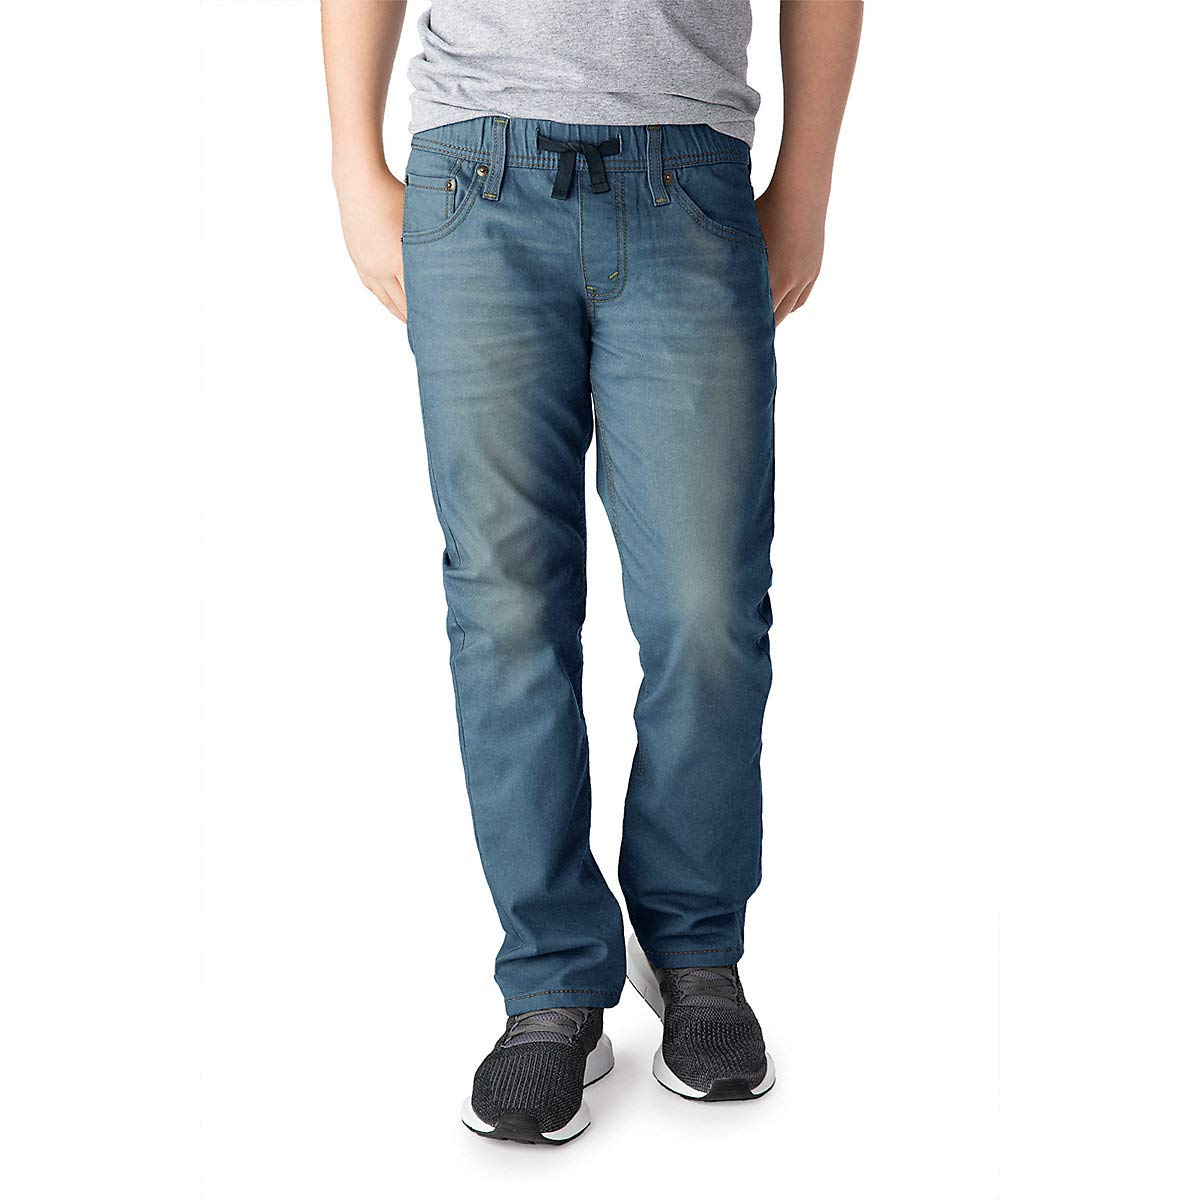 Signature by Levi Strauss & Co. Gold Label Boys Athletic Recess Fit Jeans, Gulf, 18 by Signature by Levi Strauss & Co. Gold Label